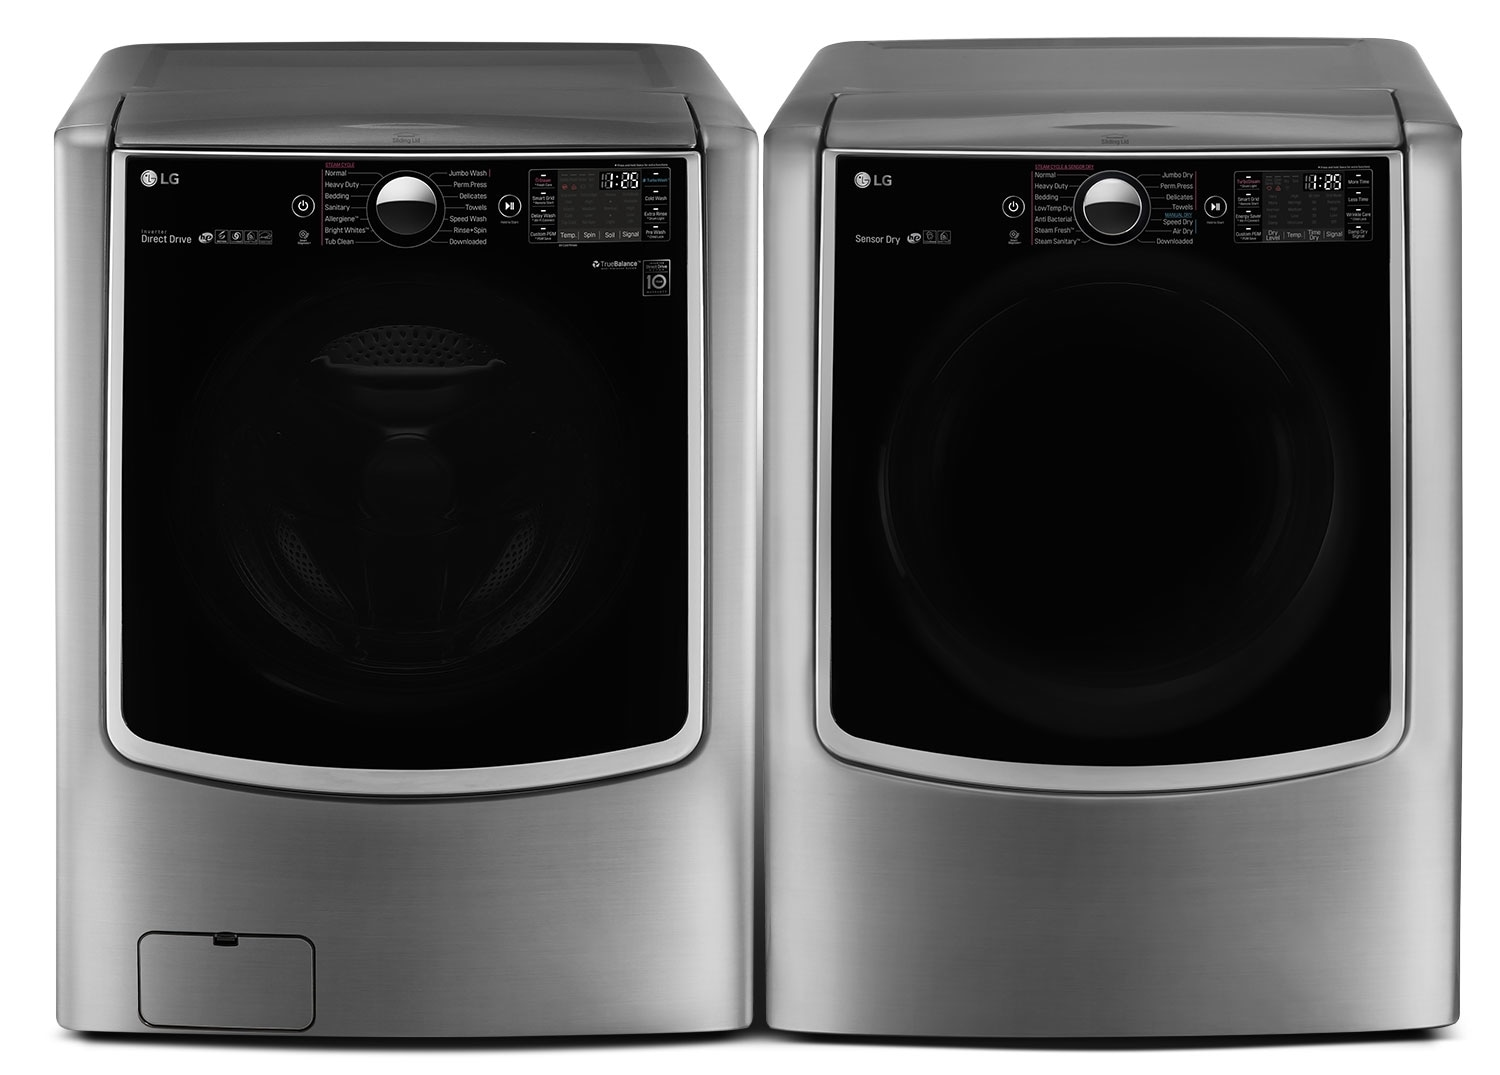 LG 6.0 Cu. Ft. Front-Load Steam Washer and 9.0 Cu. Ft. Gas Dryer – Graphite Steel